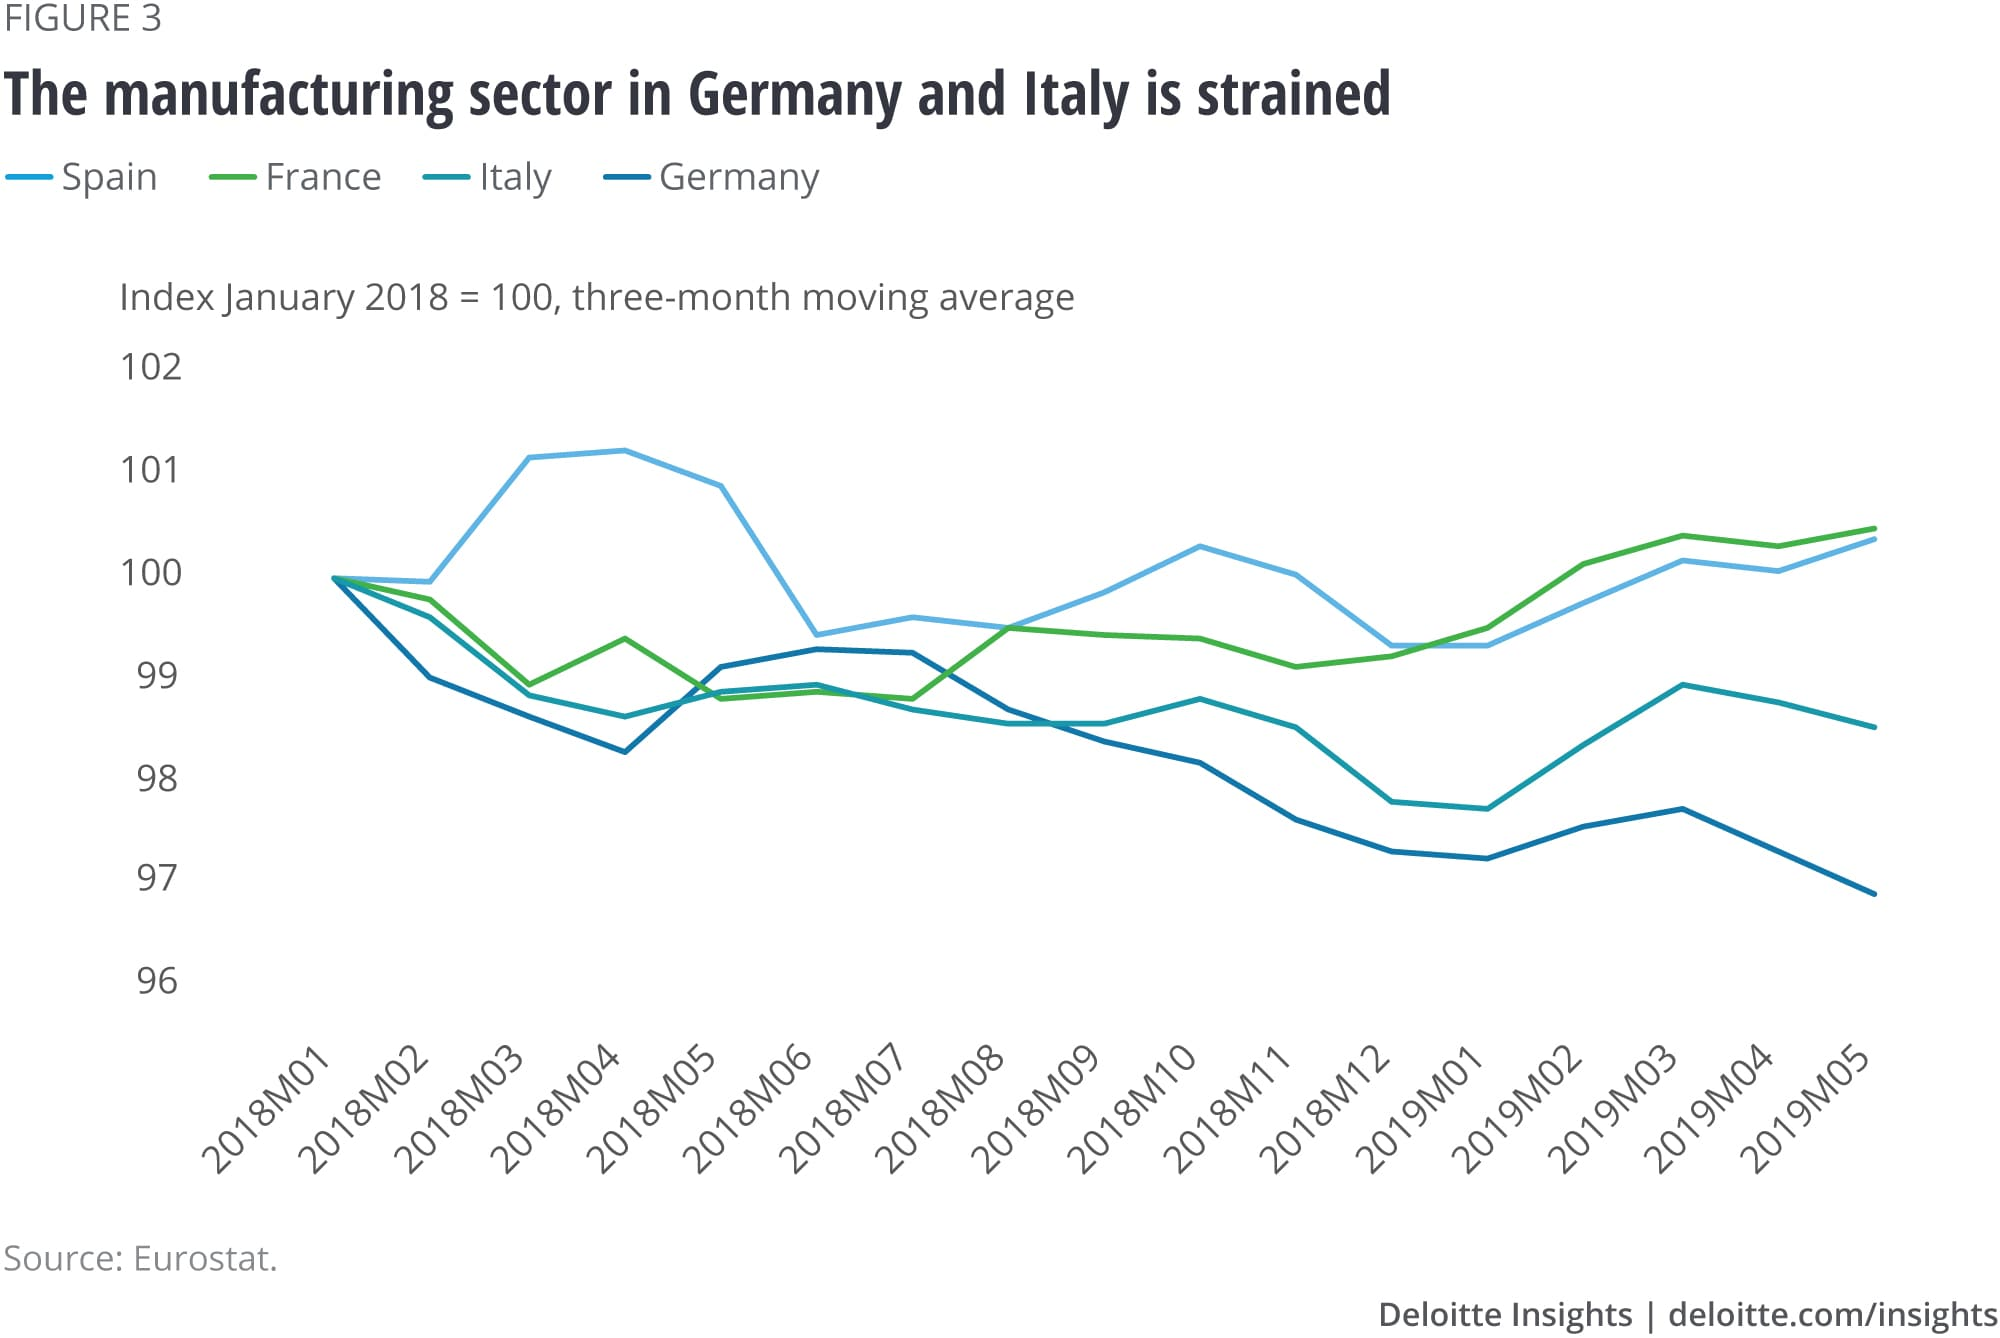 The manufacturing sector in Germany and Italy is strained